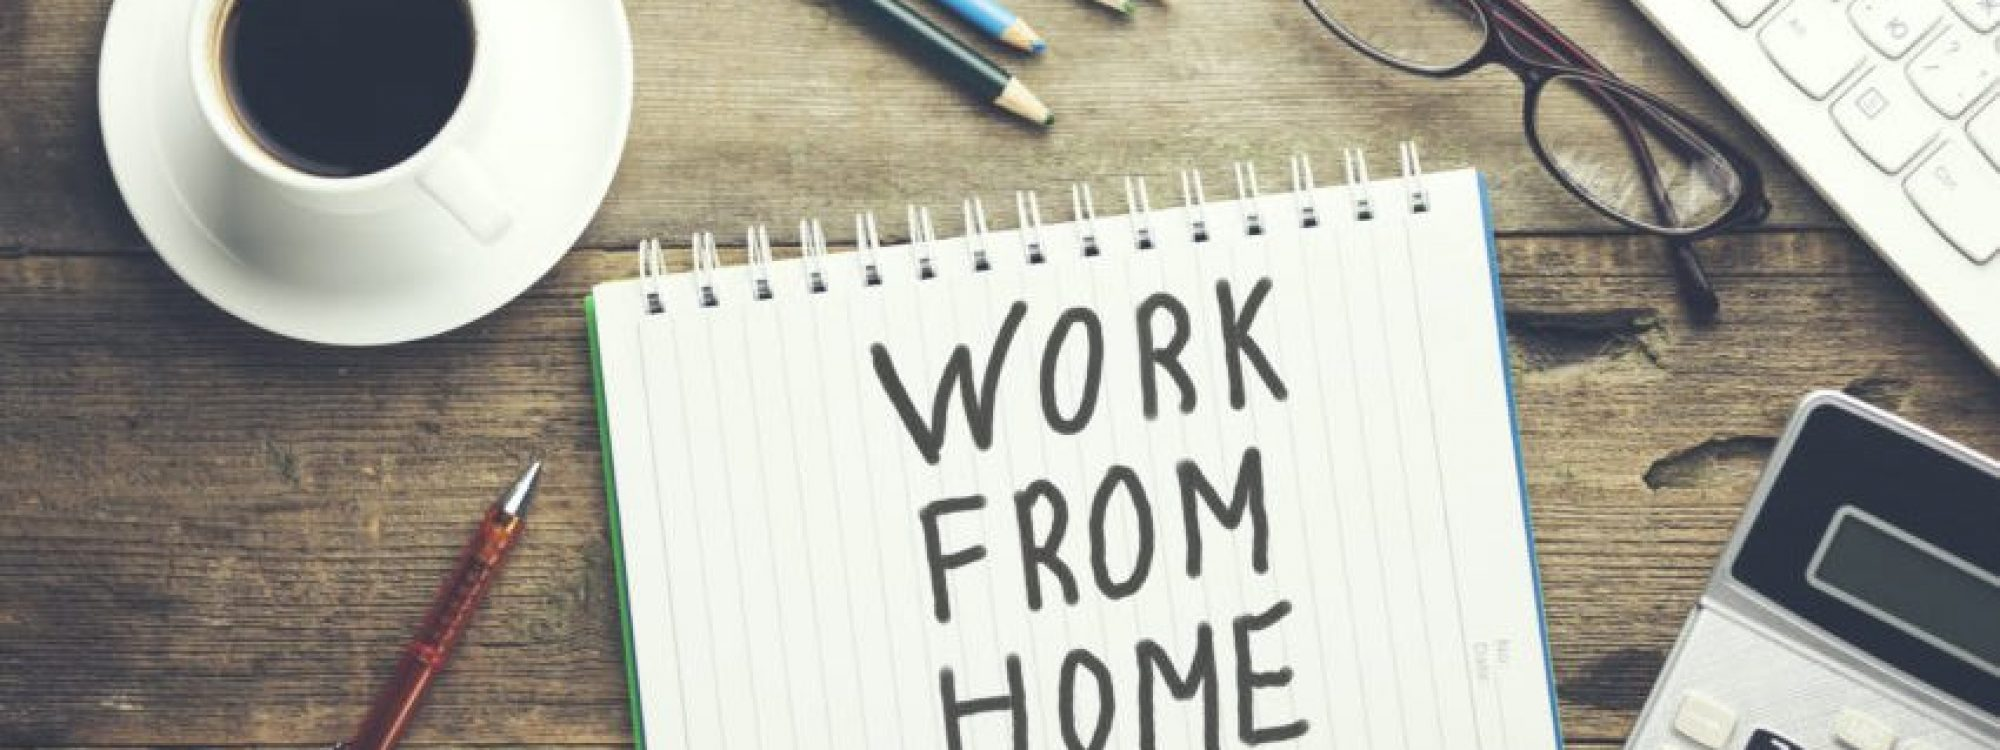 Contact Centres Establish New Normal of Home-Working